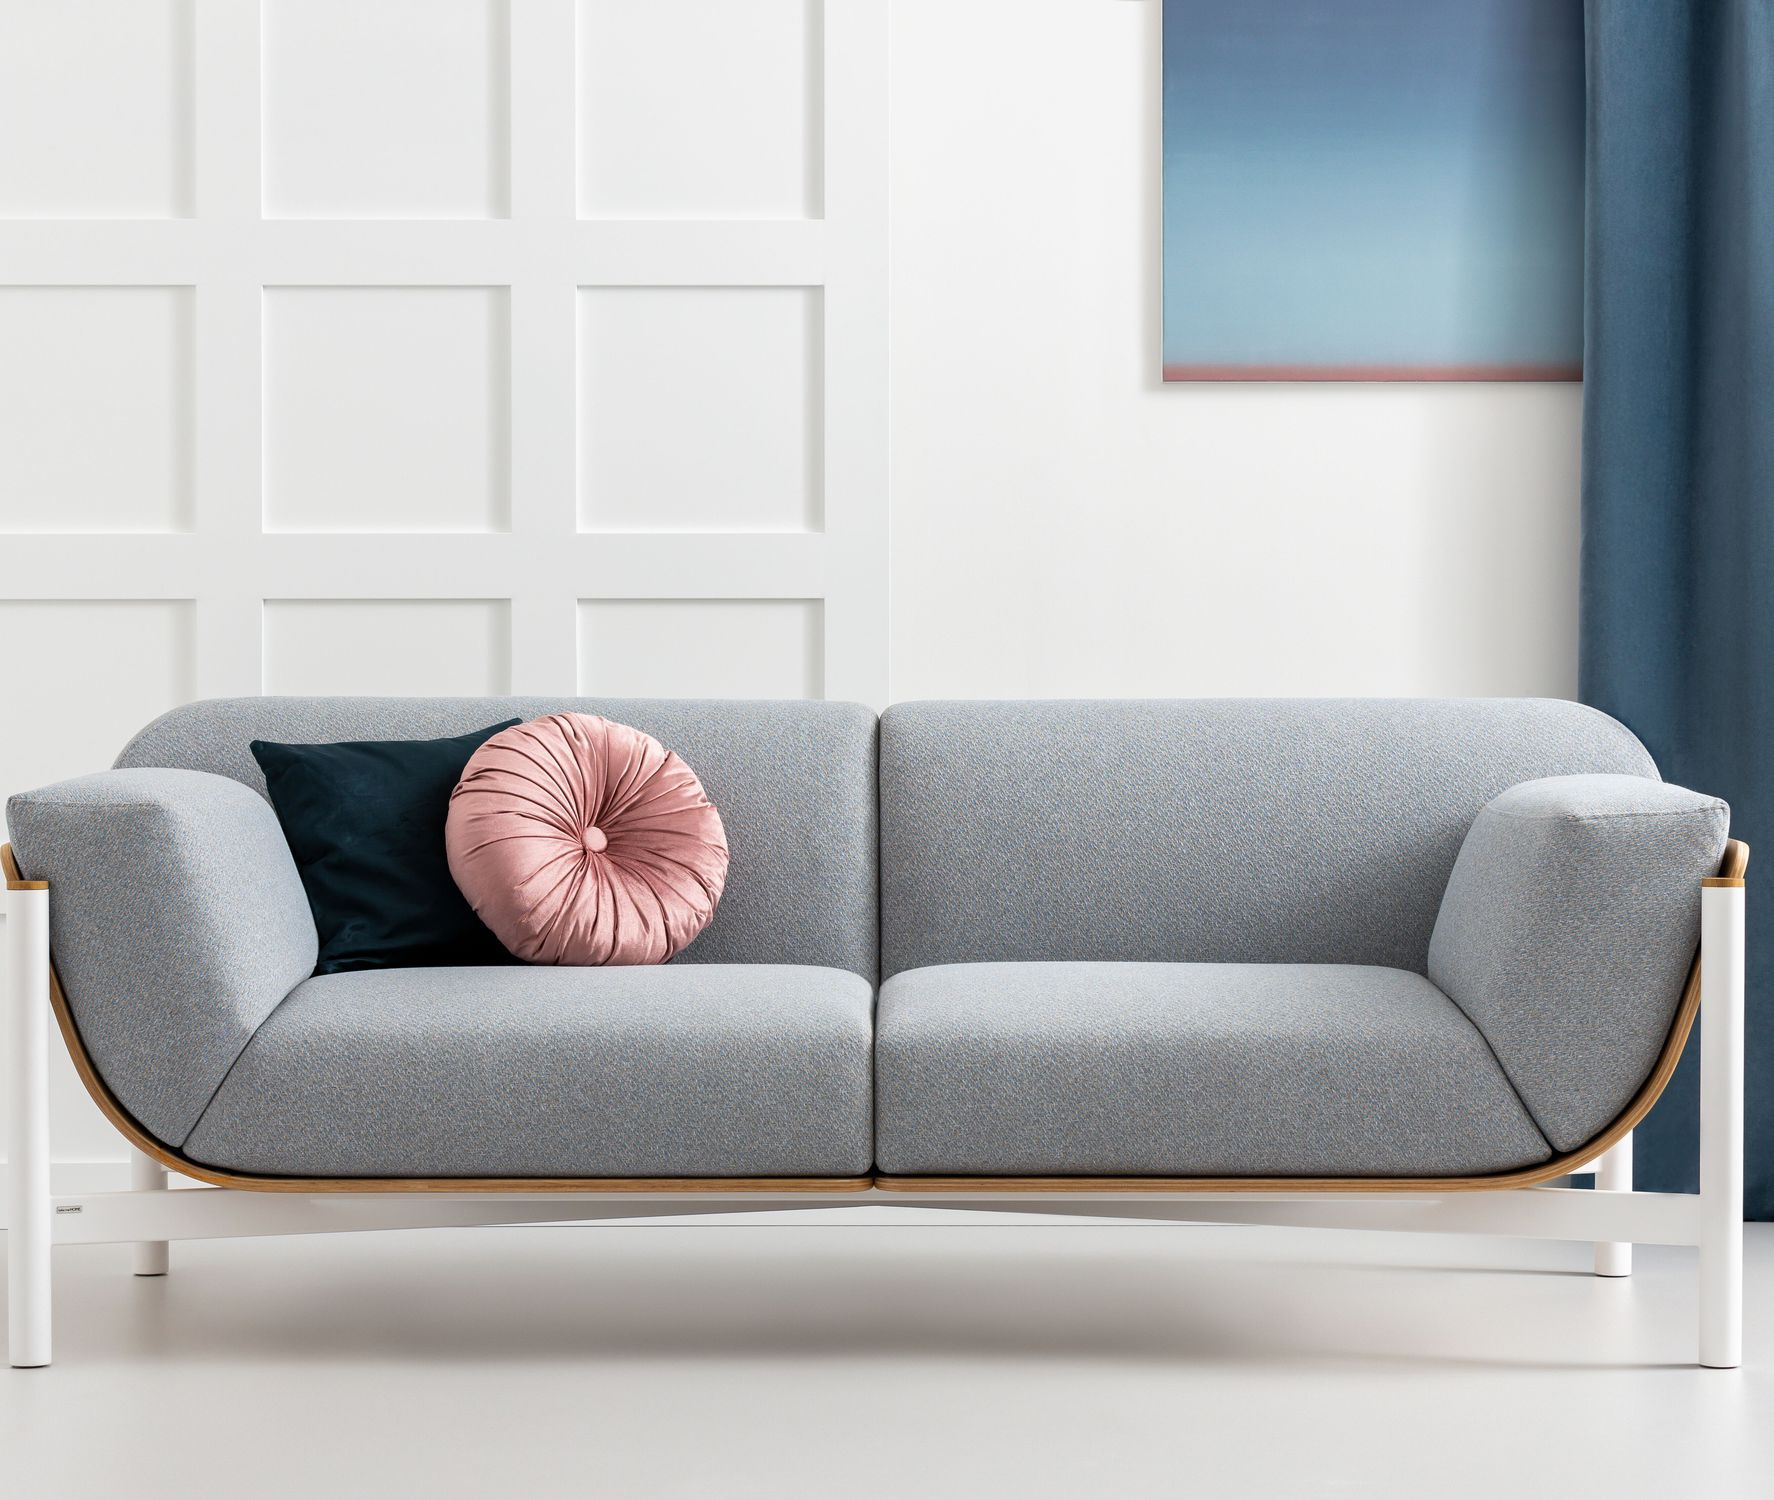 Contemporary sofa - VELO - take me HOME. - living room / water